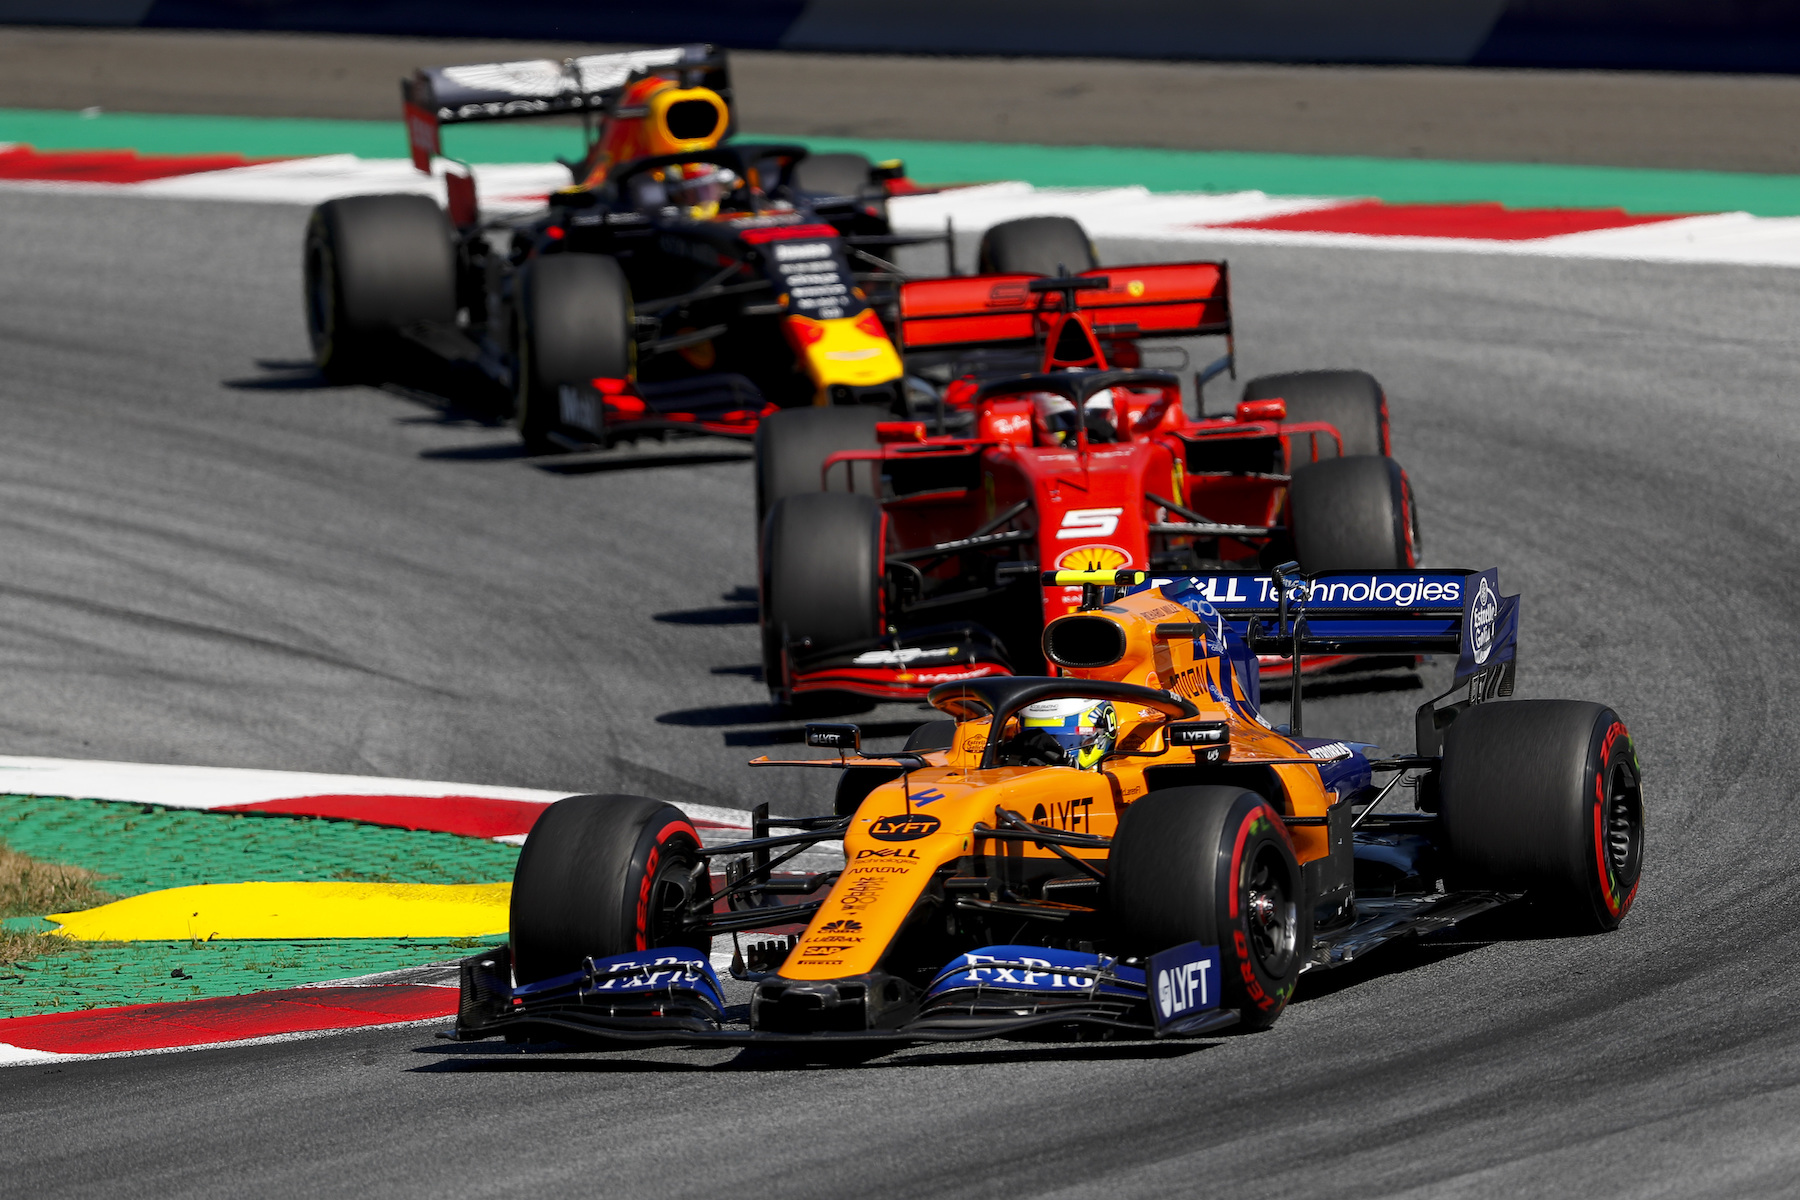 E 5 2019 Austrian GP Sunday 23.jpg